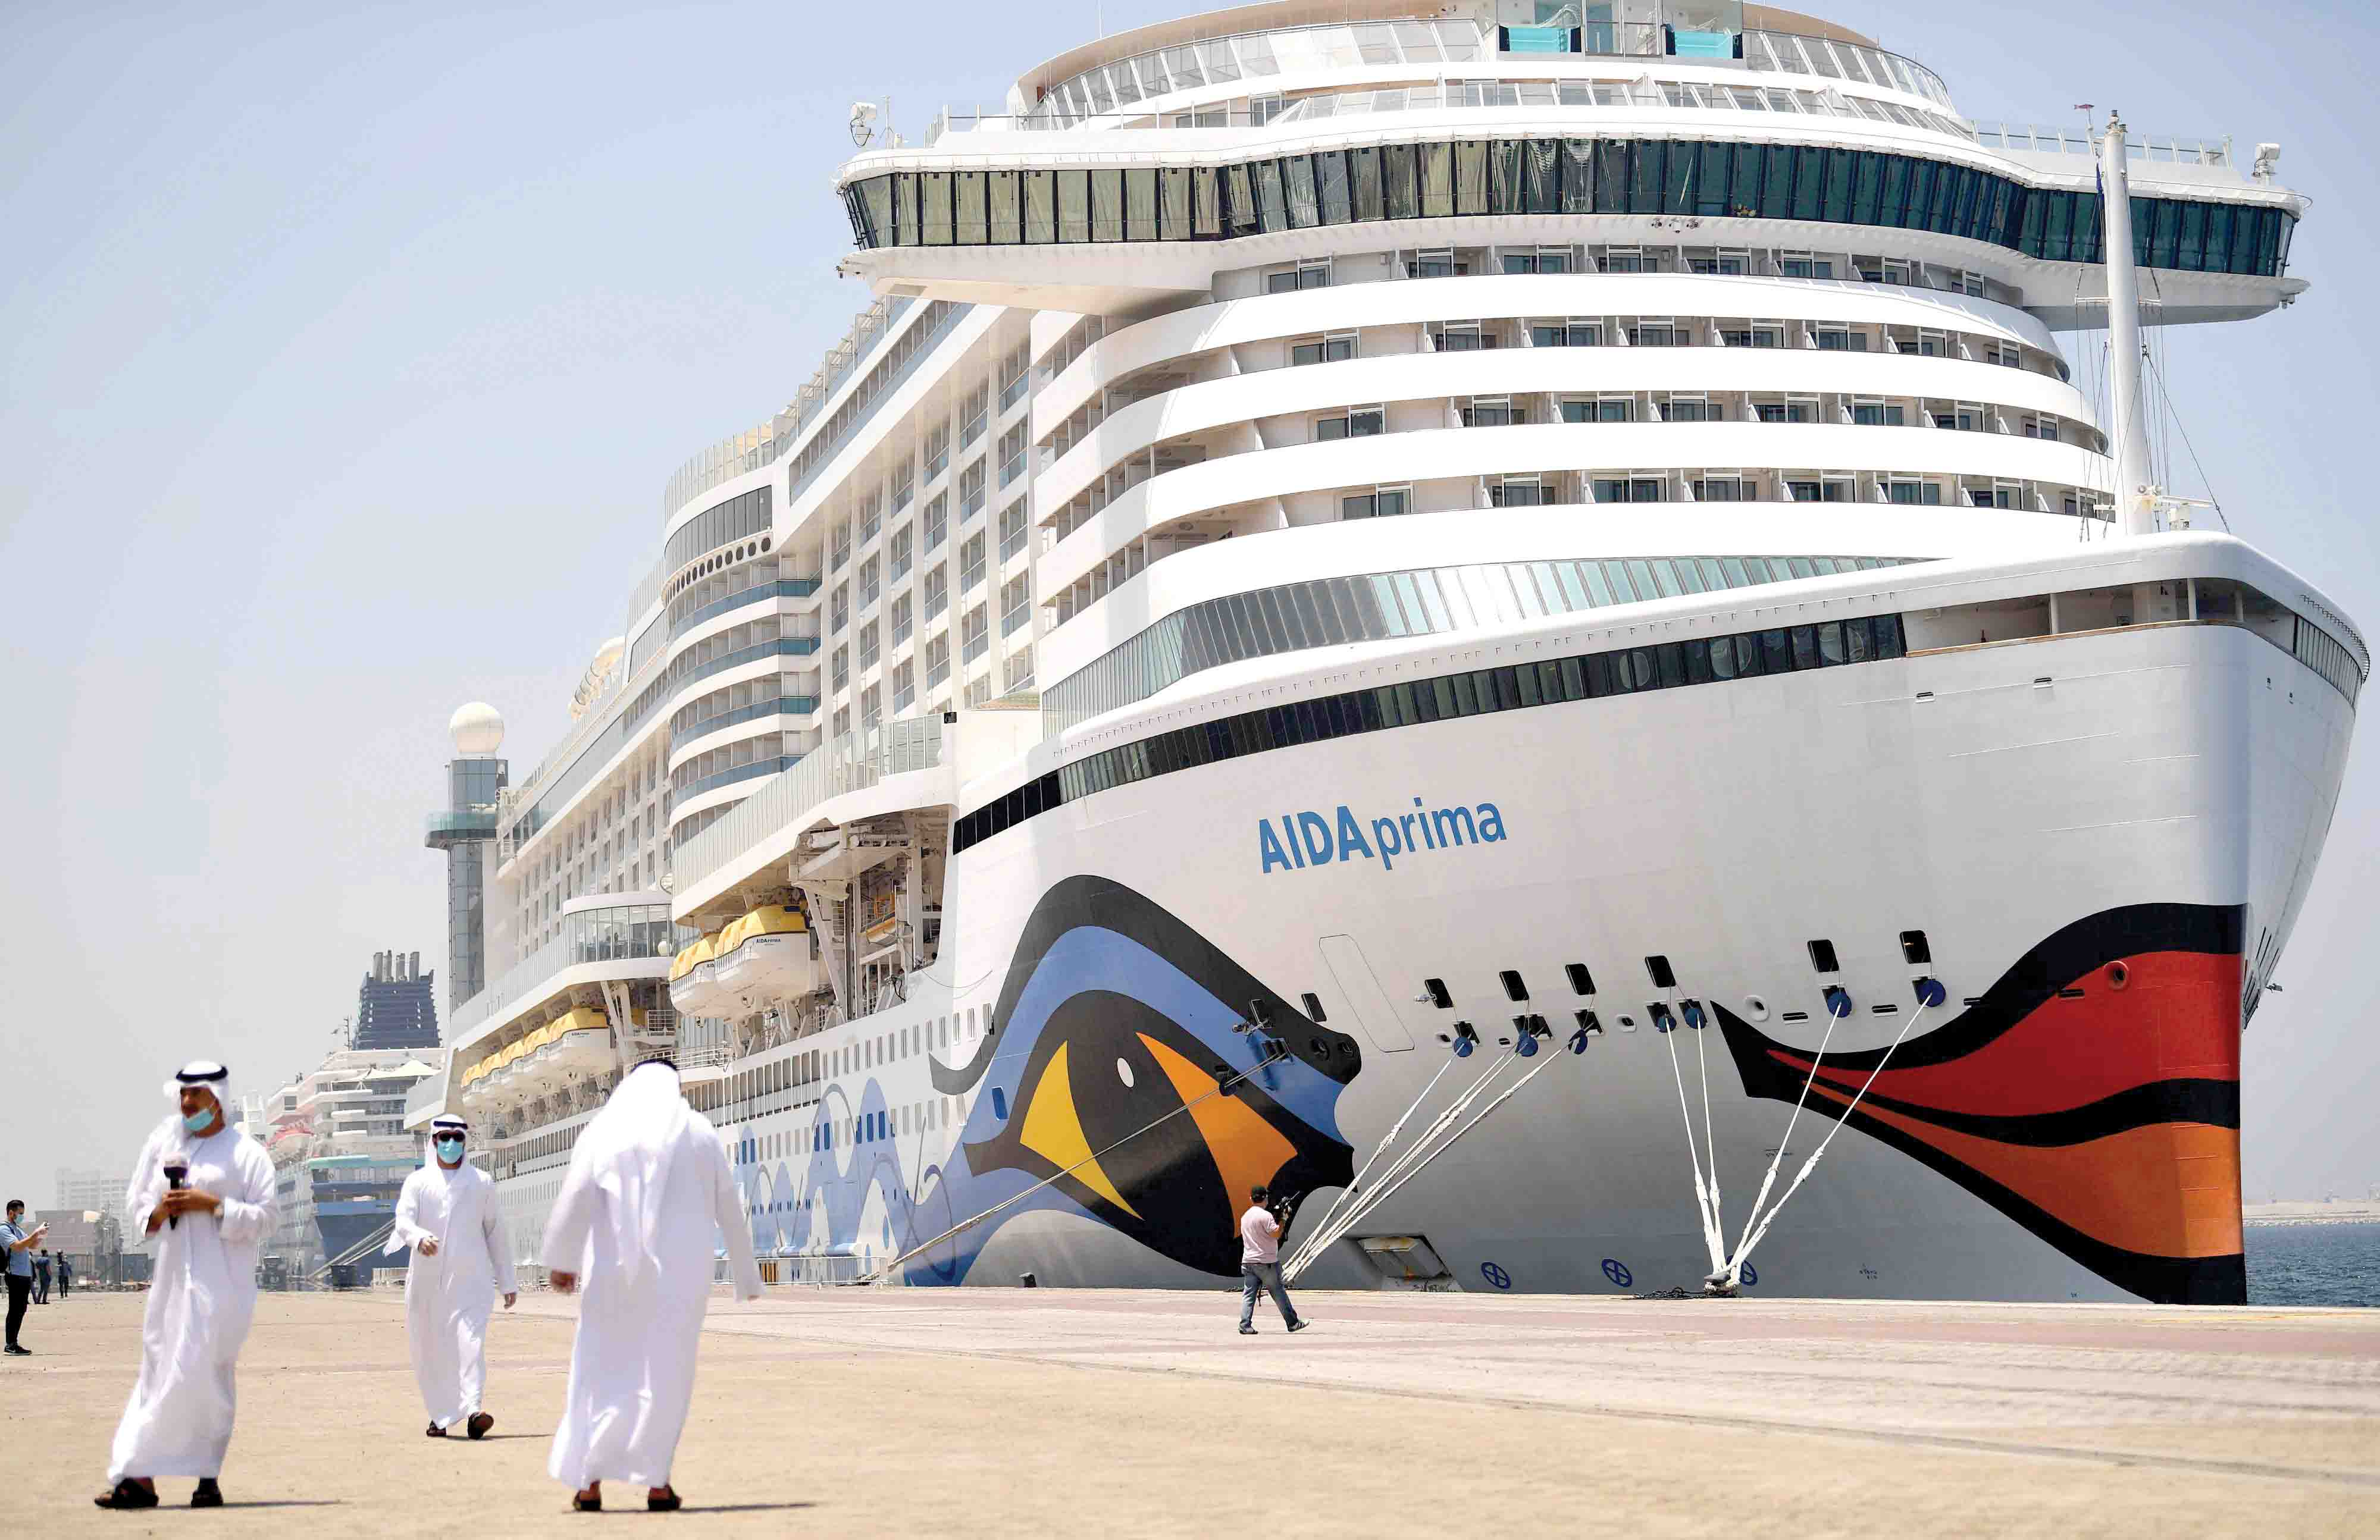 AIDA Prima, the flagship of AIDA Cruises, docks at Port Rashid in Dubai, April 22. Dubai has welcomed 13 foreign cruise ships that were at sea while most countries closed maritime borders due to the coronavirus pandemic. (AFP)